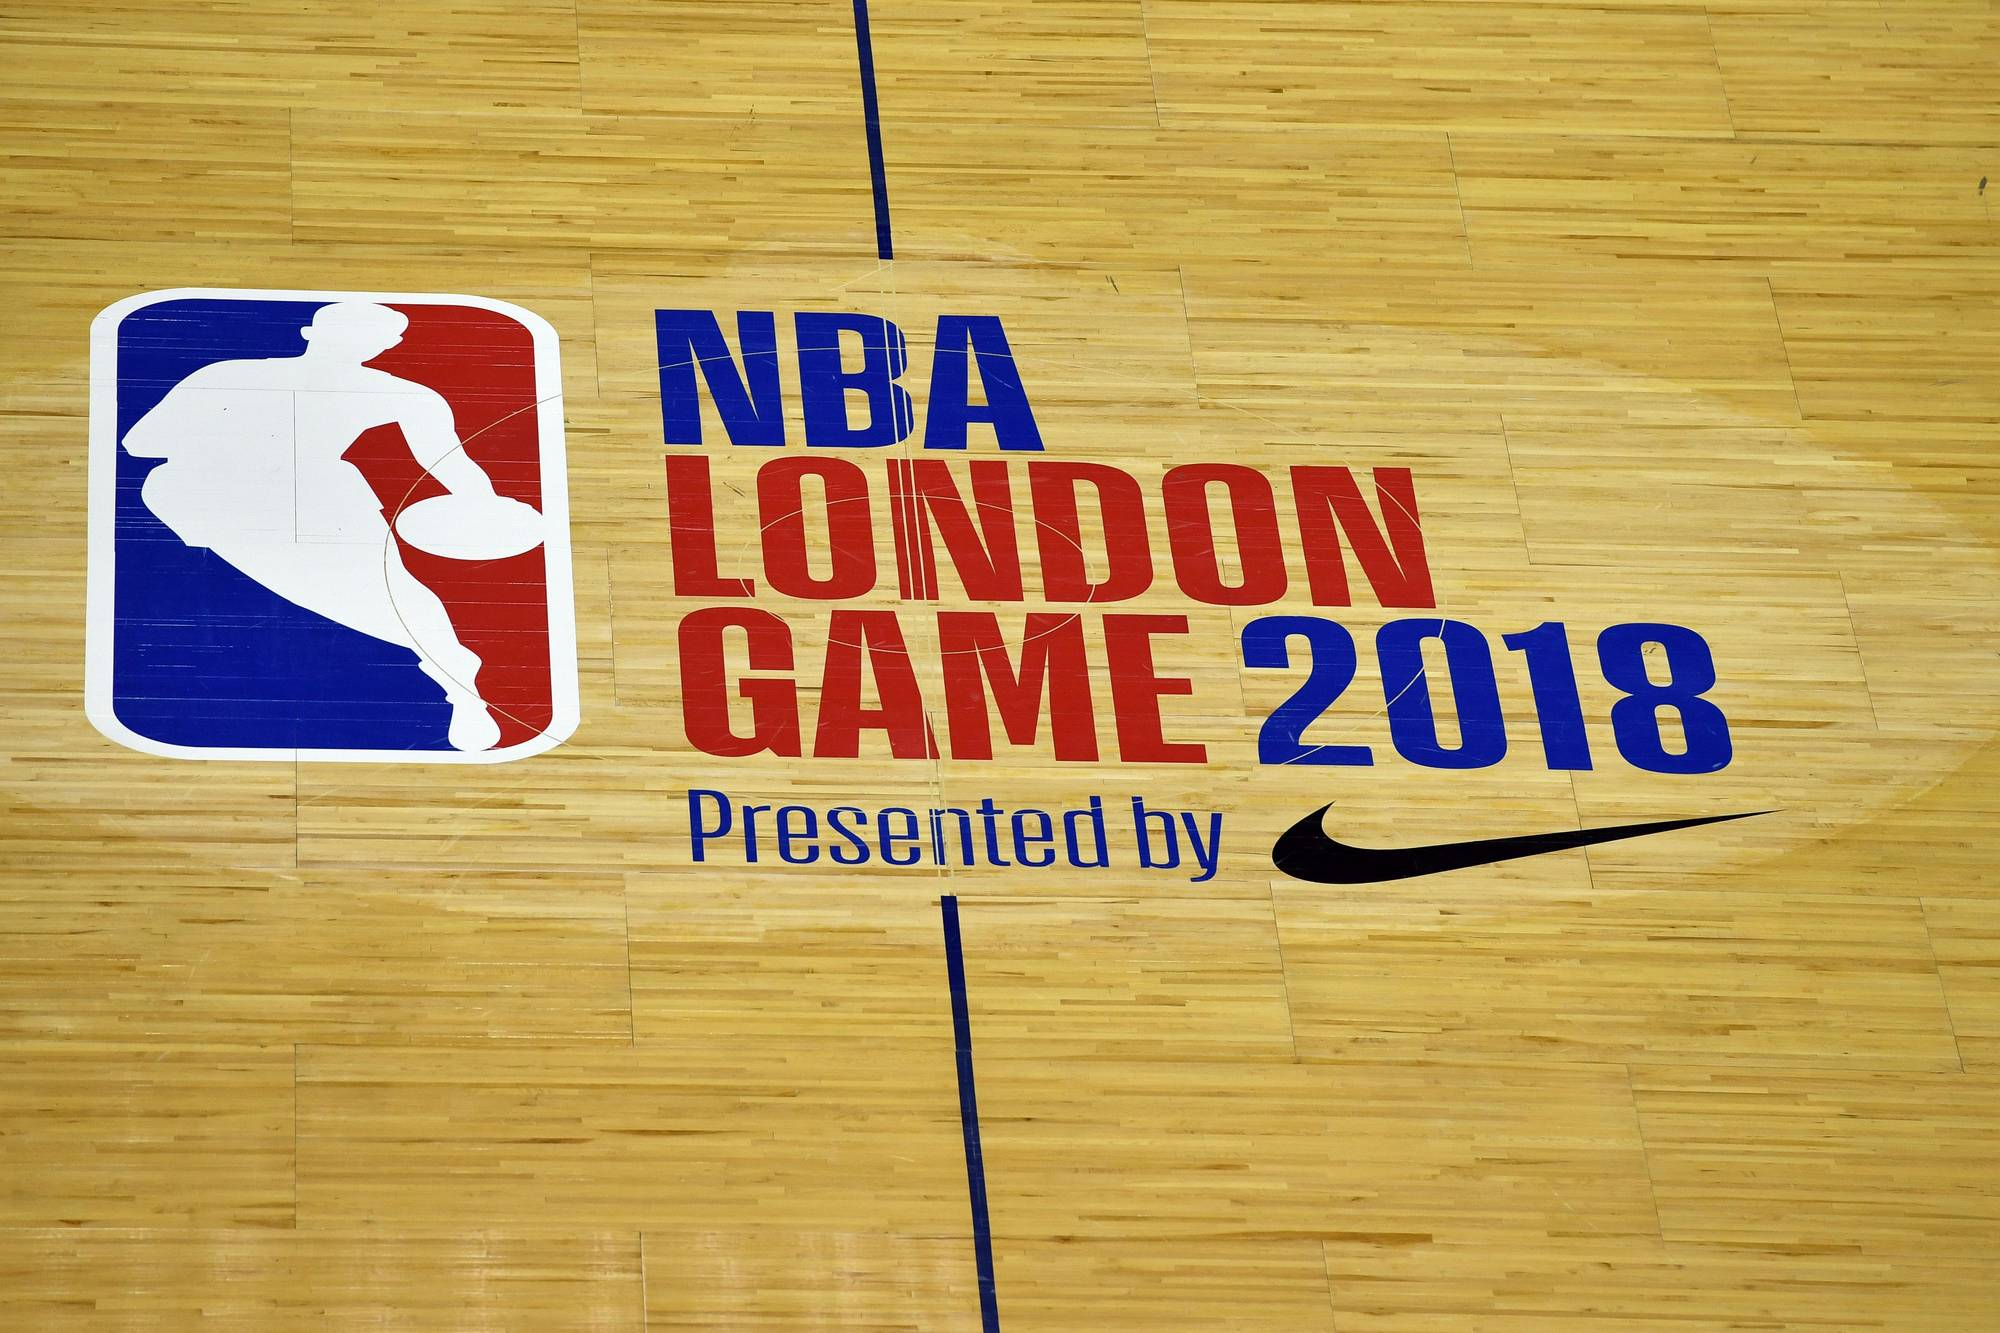 Celtics overcome 22-point deficit to beat 76ers in London